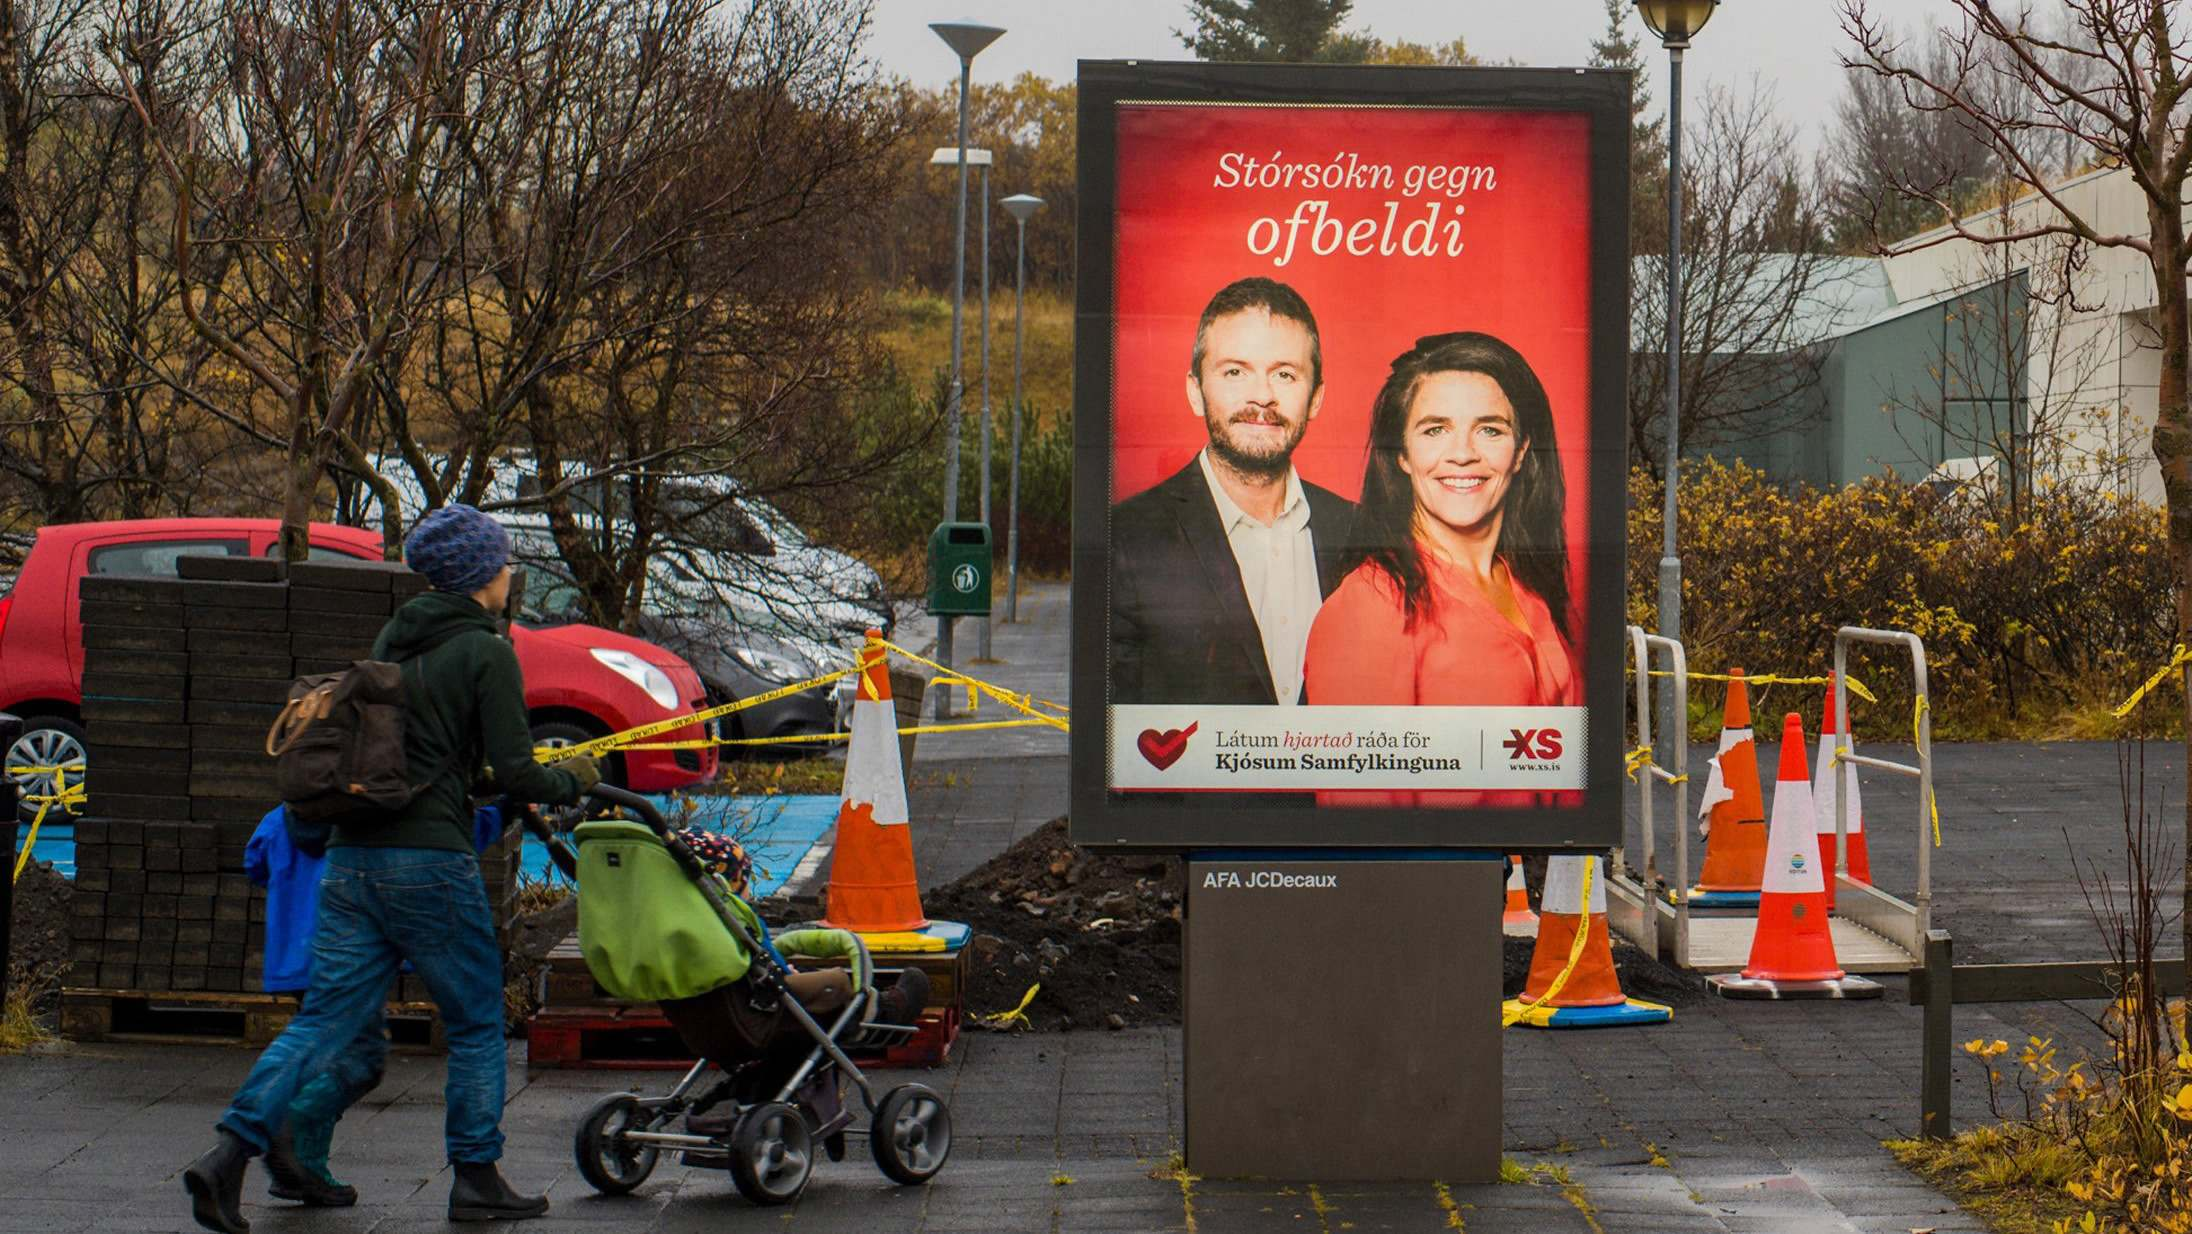 Iceland's left-wing parties eye victory as political establishment hit by scandals